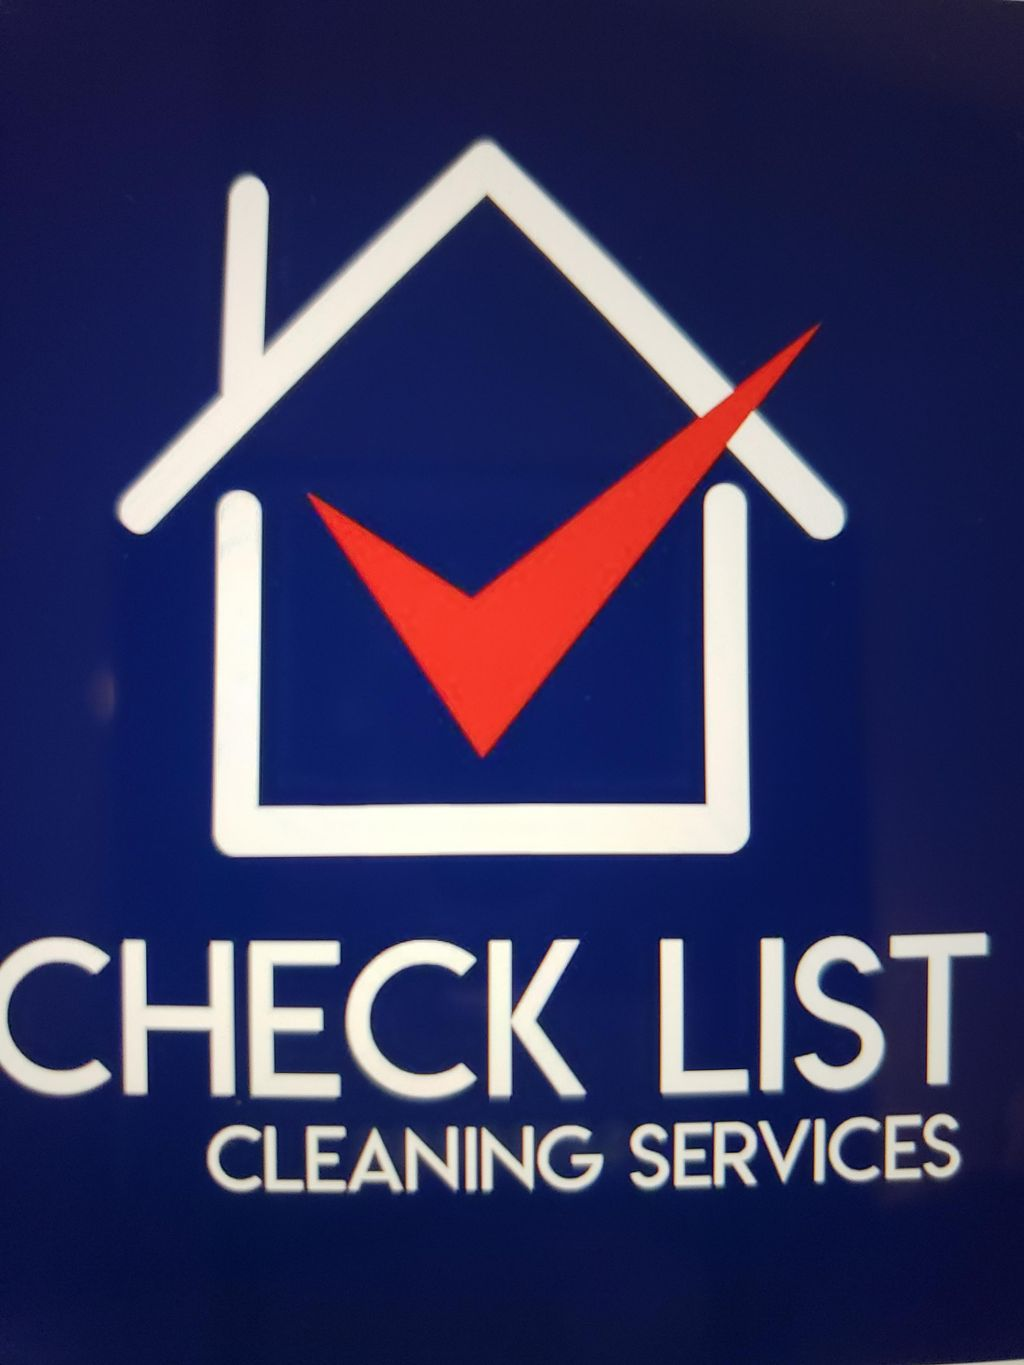 Checklist Services LLC